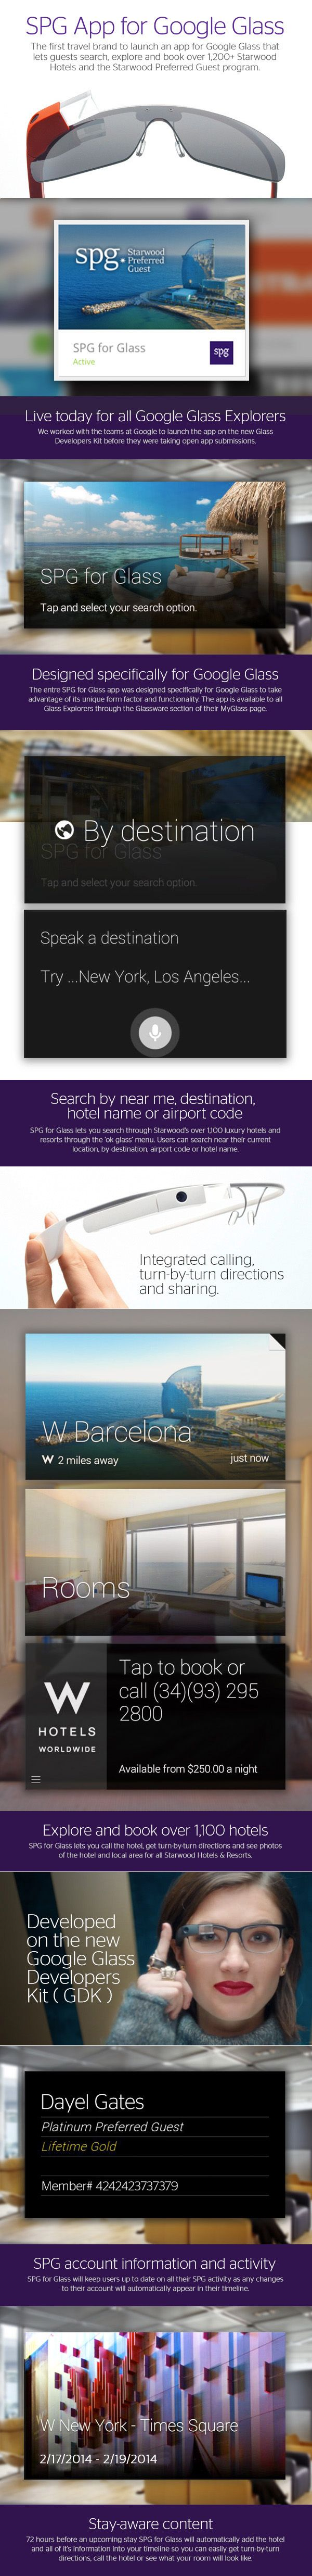 Starwood Preferred Guest App for Google Glass on Behance